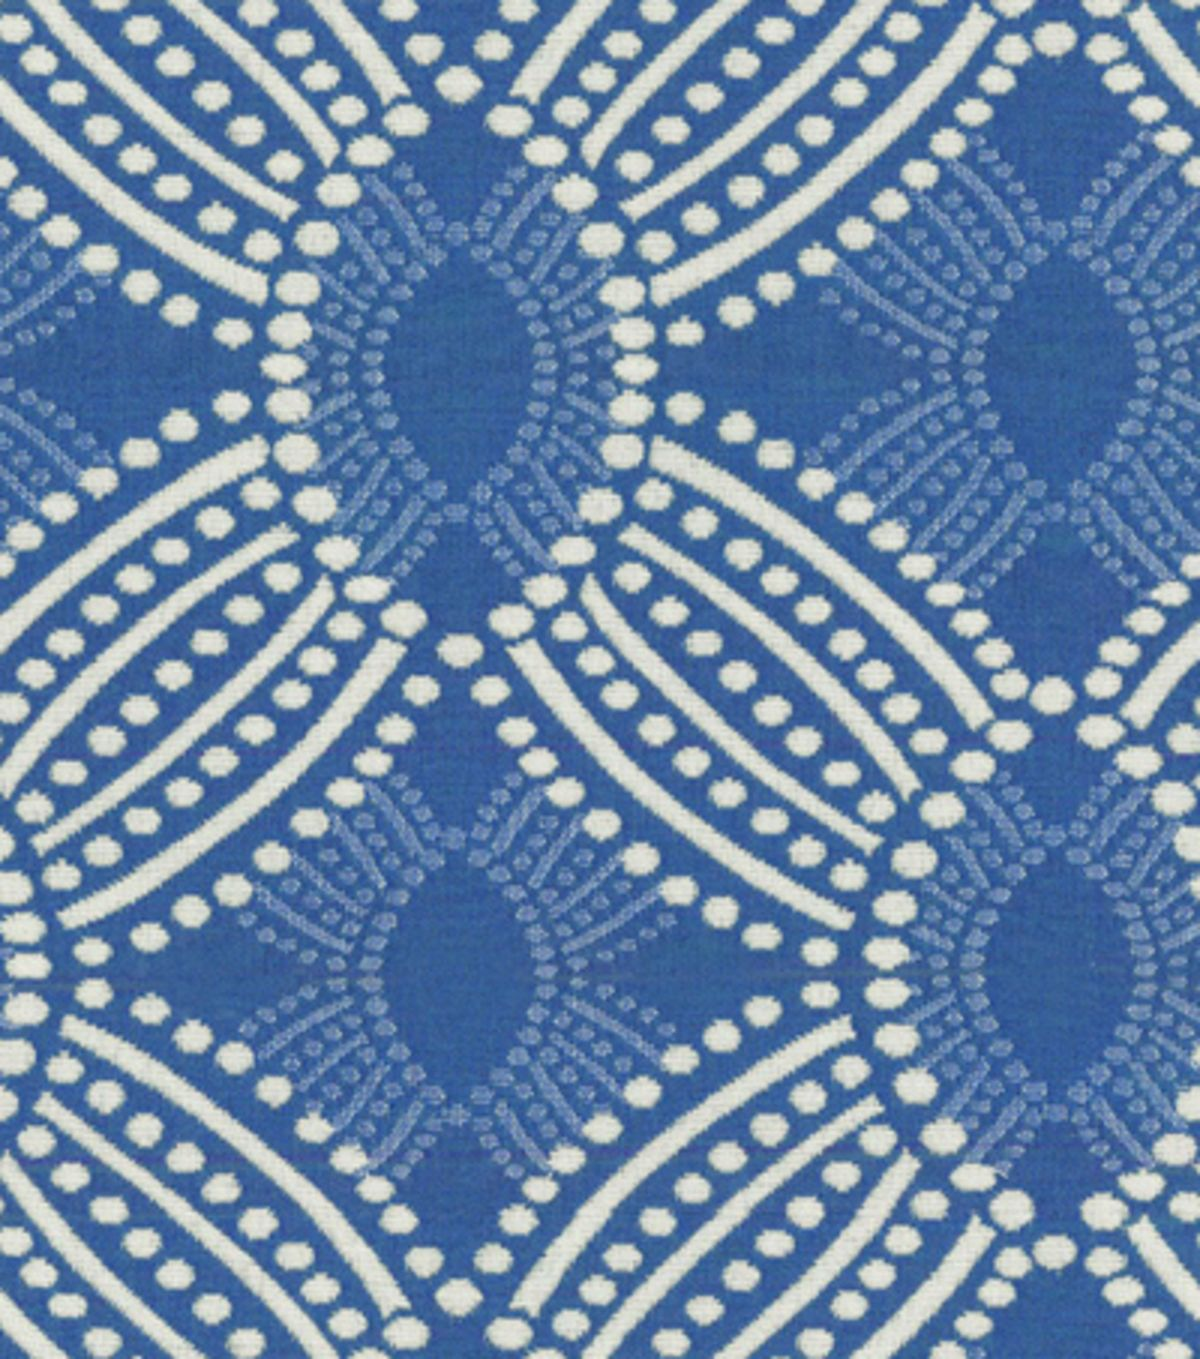 Home Decor 8''x 8'' Fabric Swatch-HGTV HOME Time Zone AzureHome Decor 8''x 8'' Fabric Swatch-HGTV HOME Time Zone Azure,